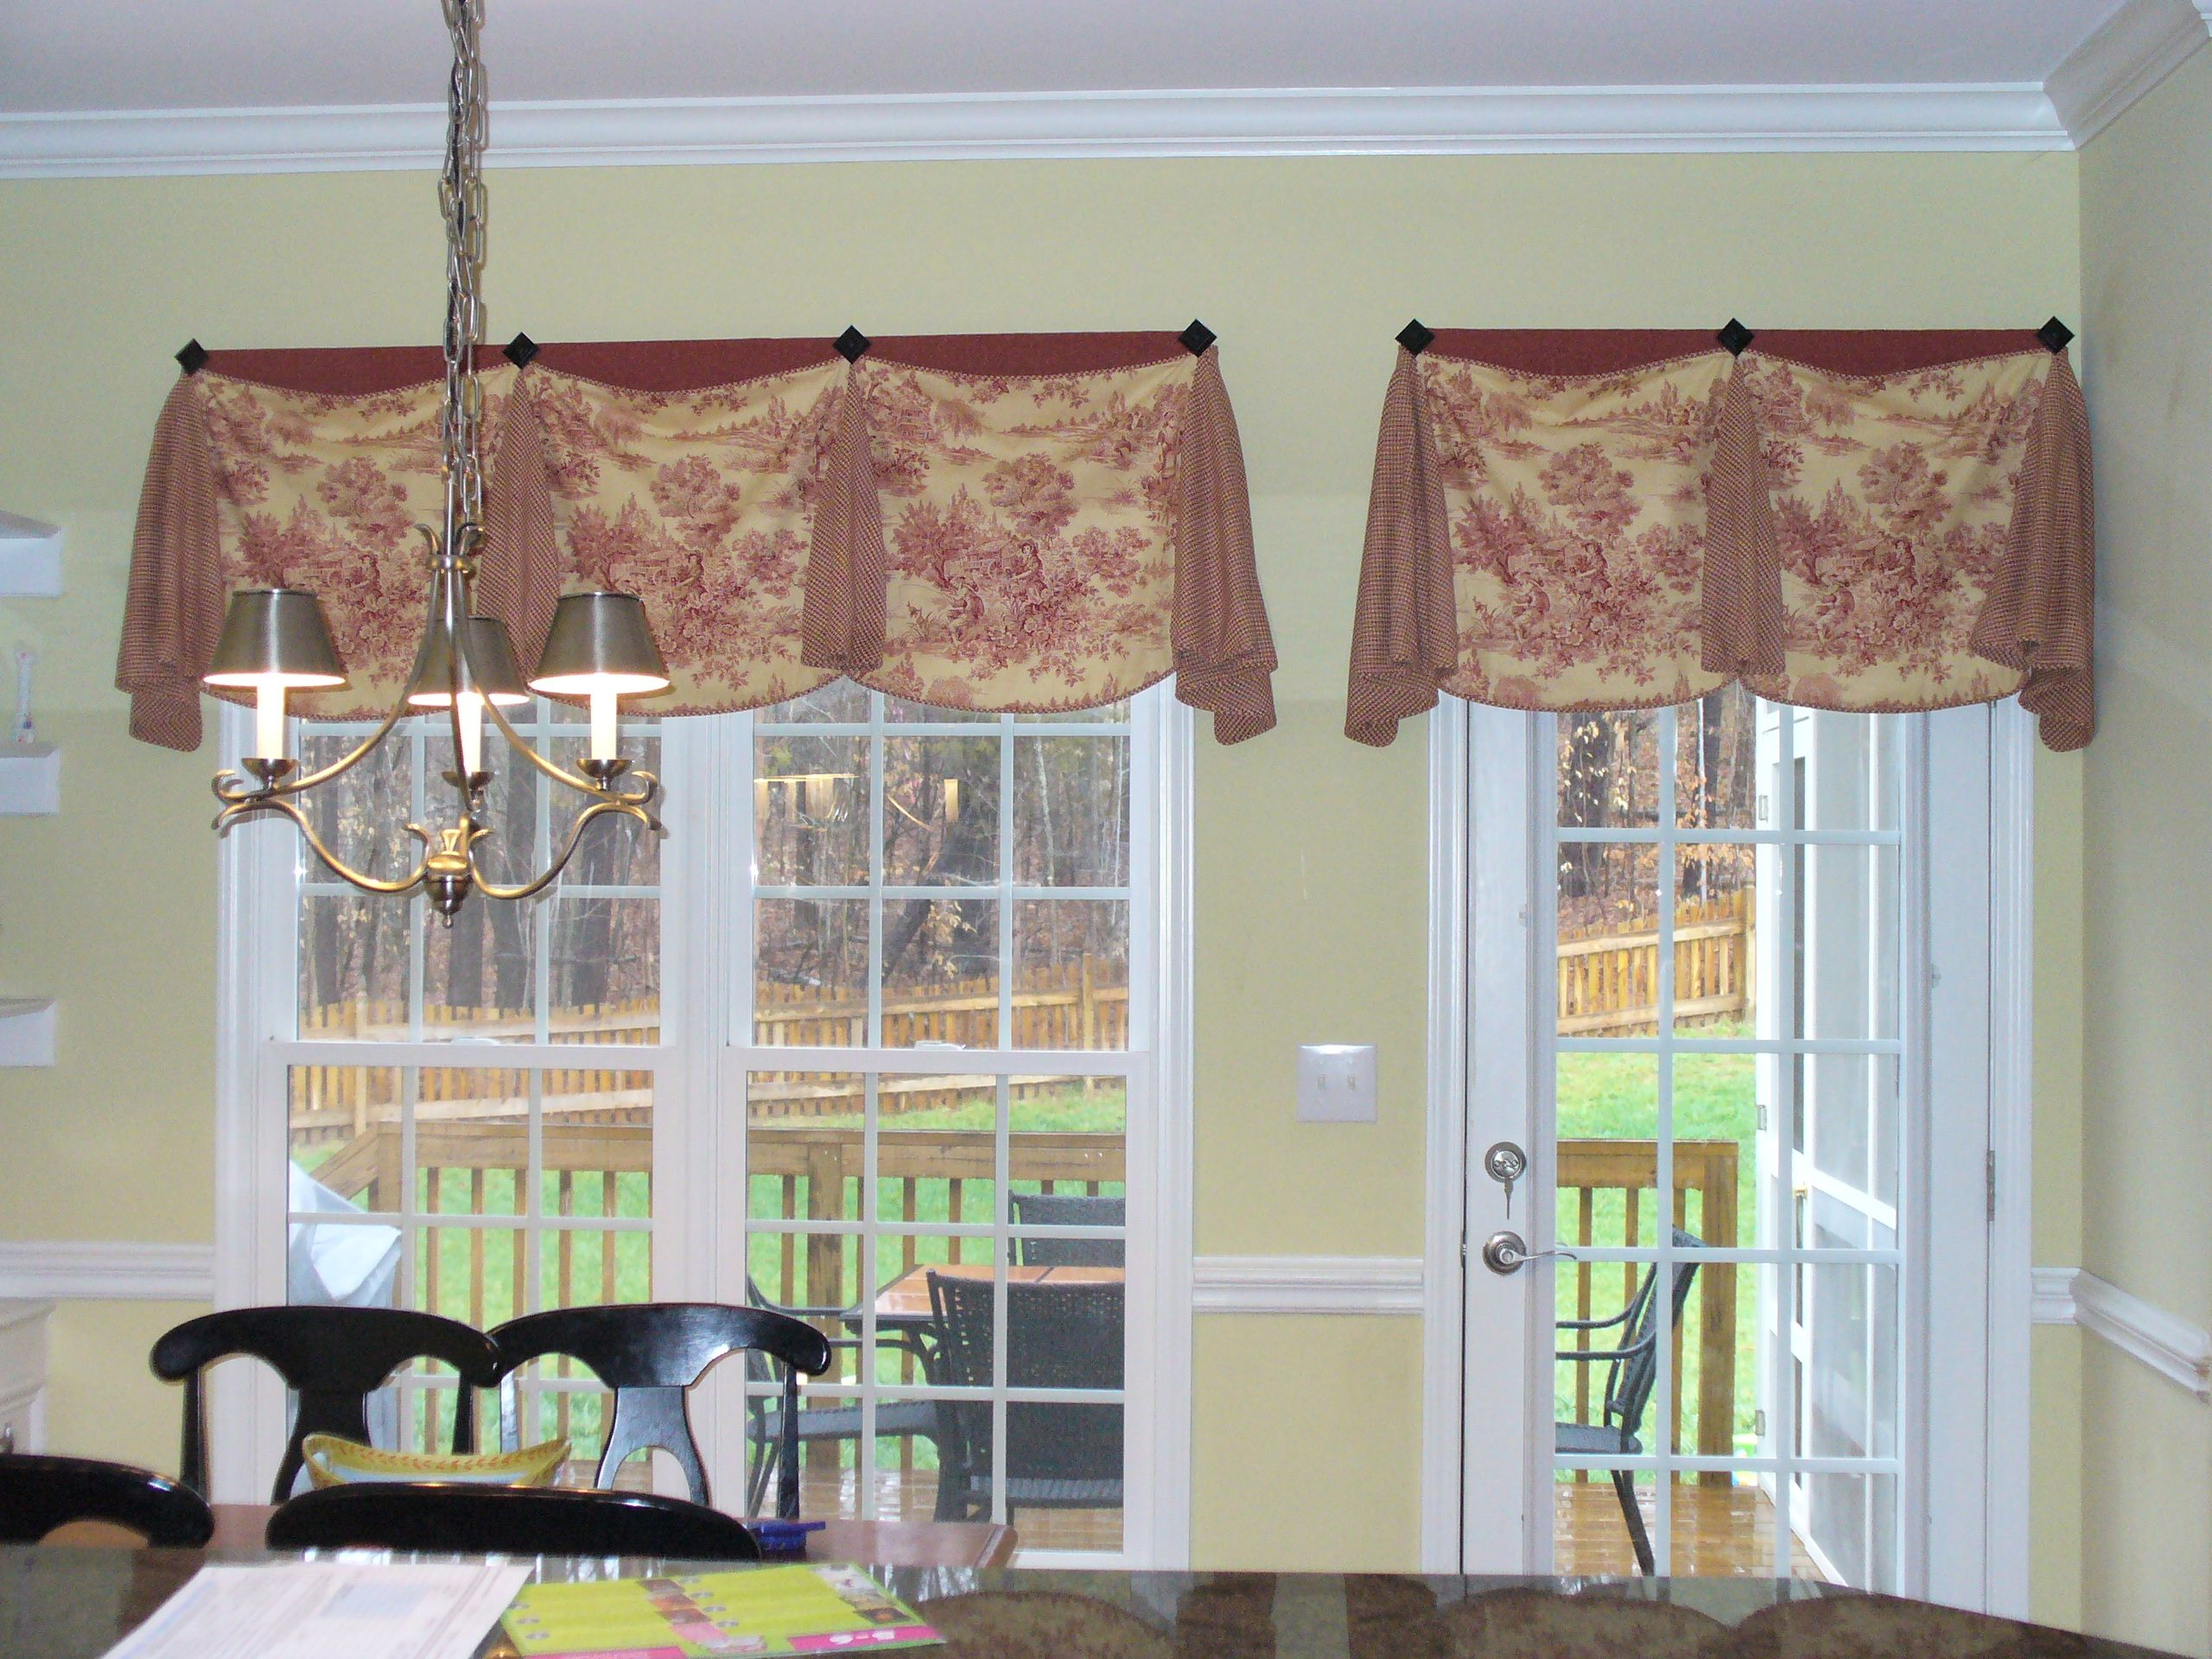 Soft Cornices And Jabots Maintain Perfect Line Of Sight Between Window And